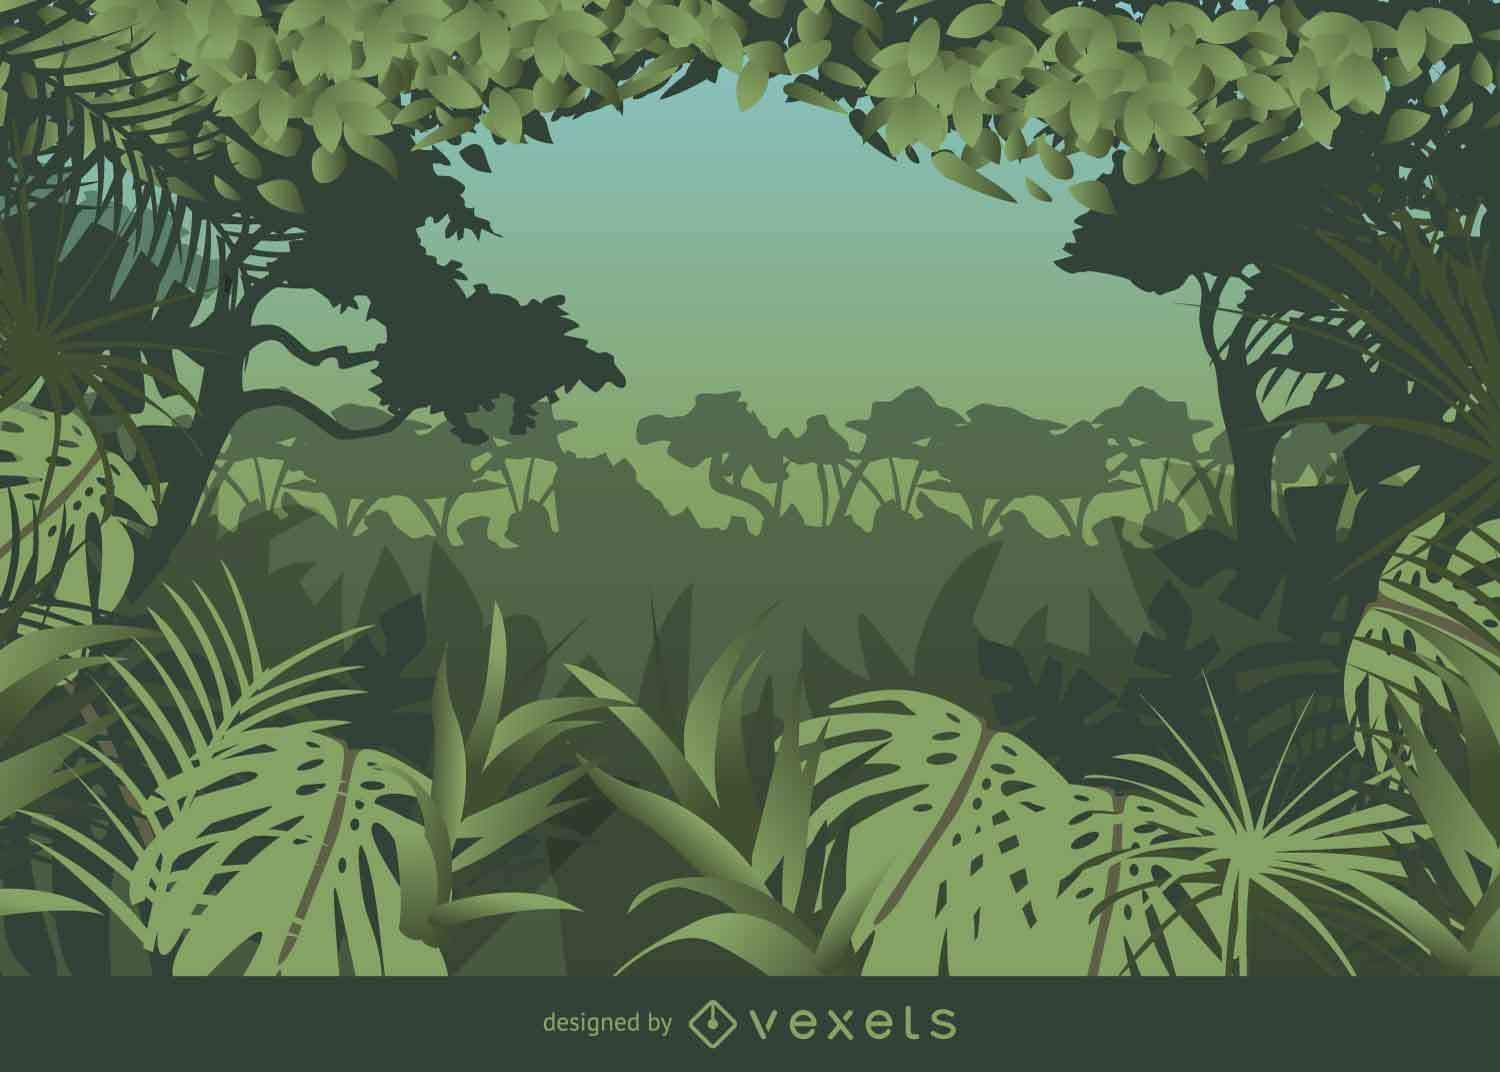 jungle vector graphics to download rh vexels com jungle vector image jungle vector image